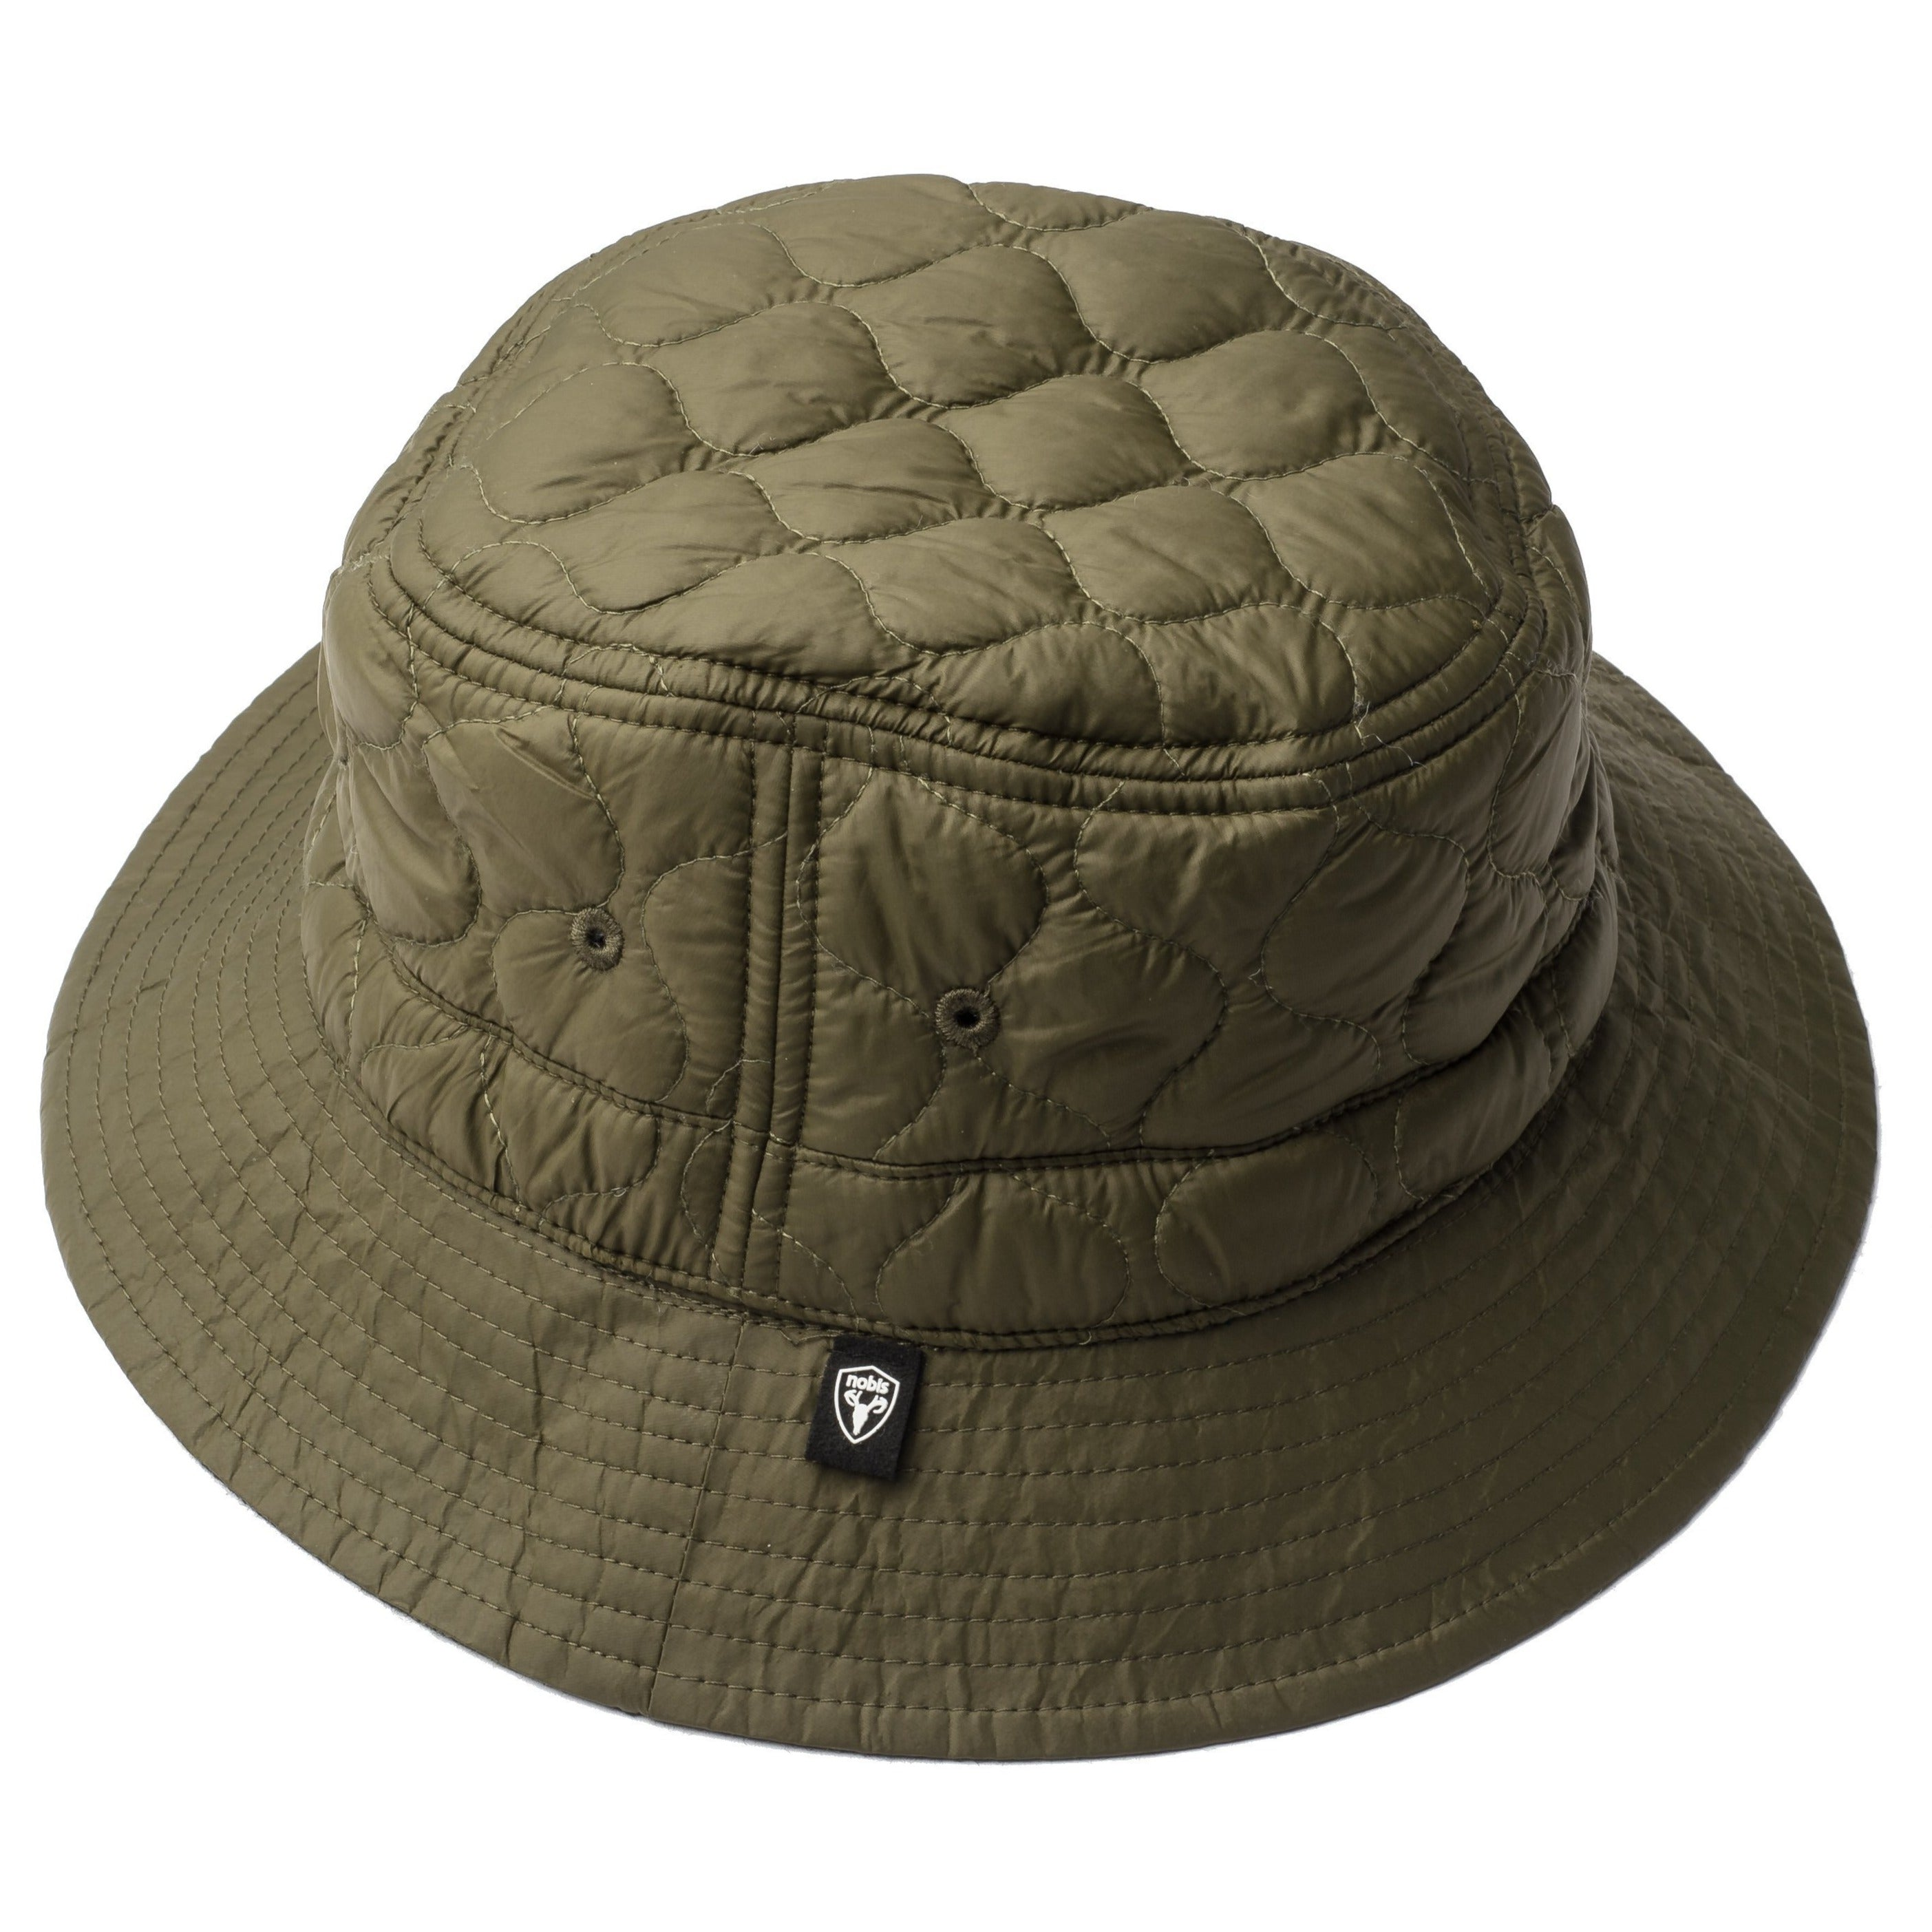 Reversible bucket hat in Fatigue color with one quilted side and one wool tweed side | color